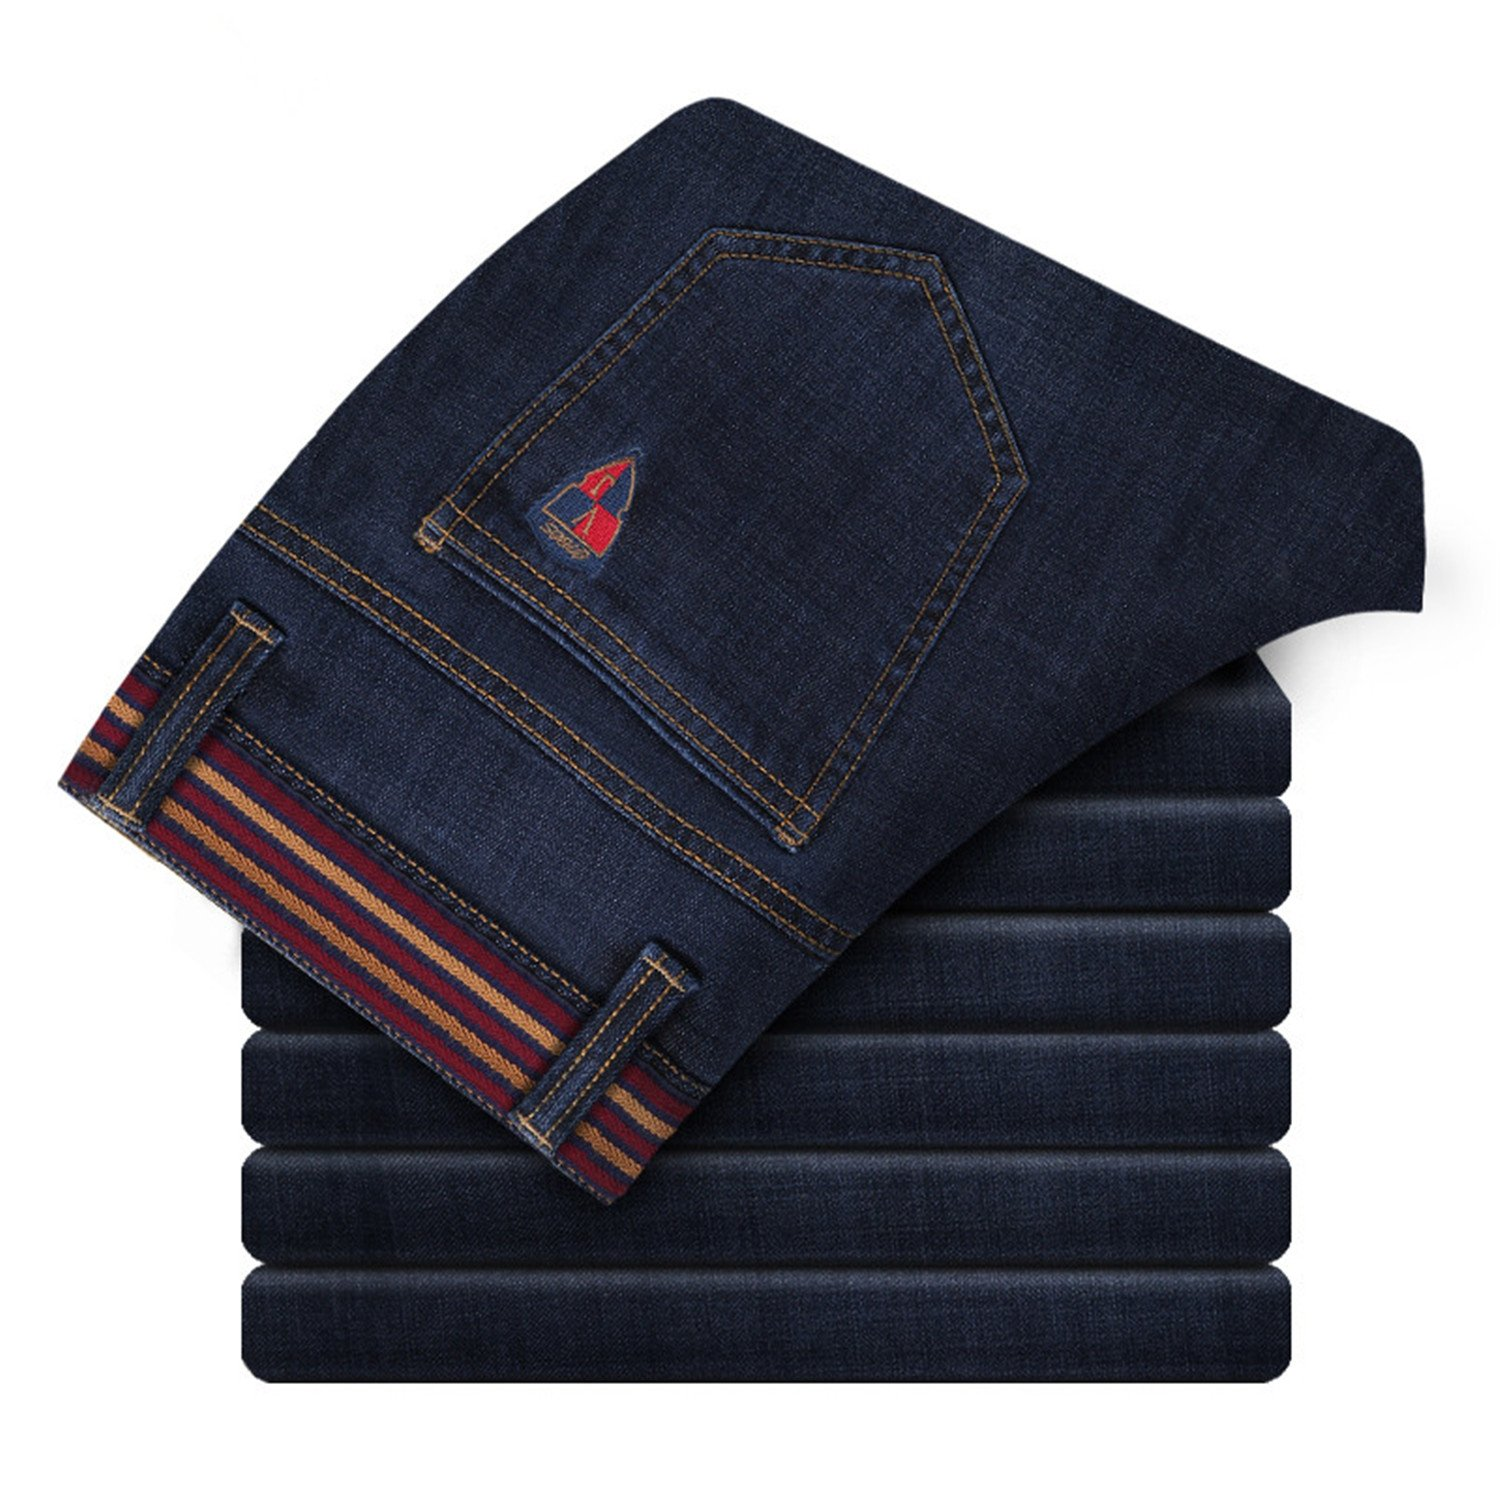 28-44 Thadensama New Mens Plus Size Jeans Big Size Jeans Casual Pants Denim Slim Fit Trousers For Man Size